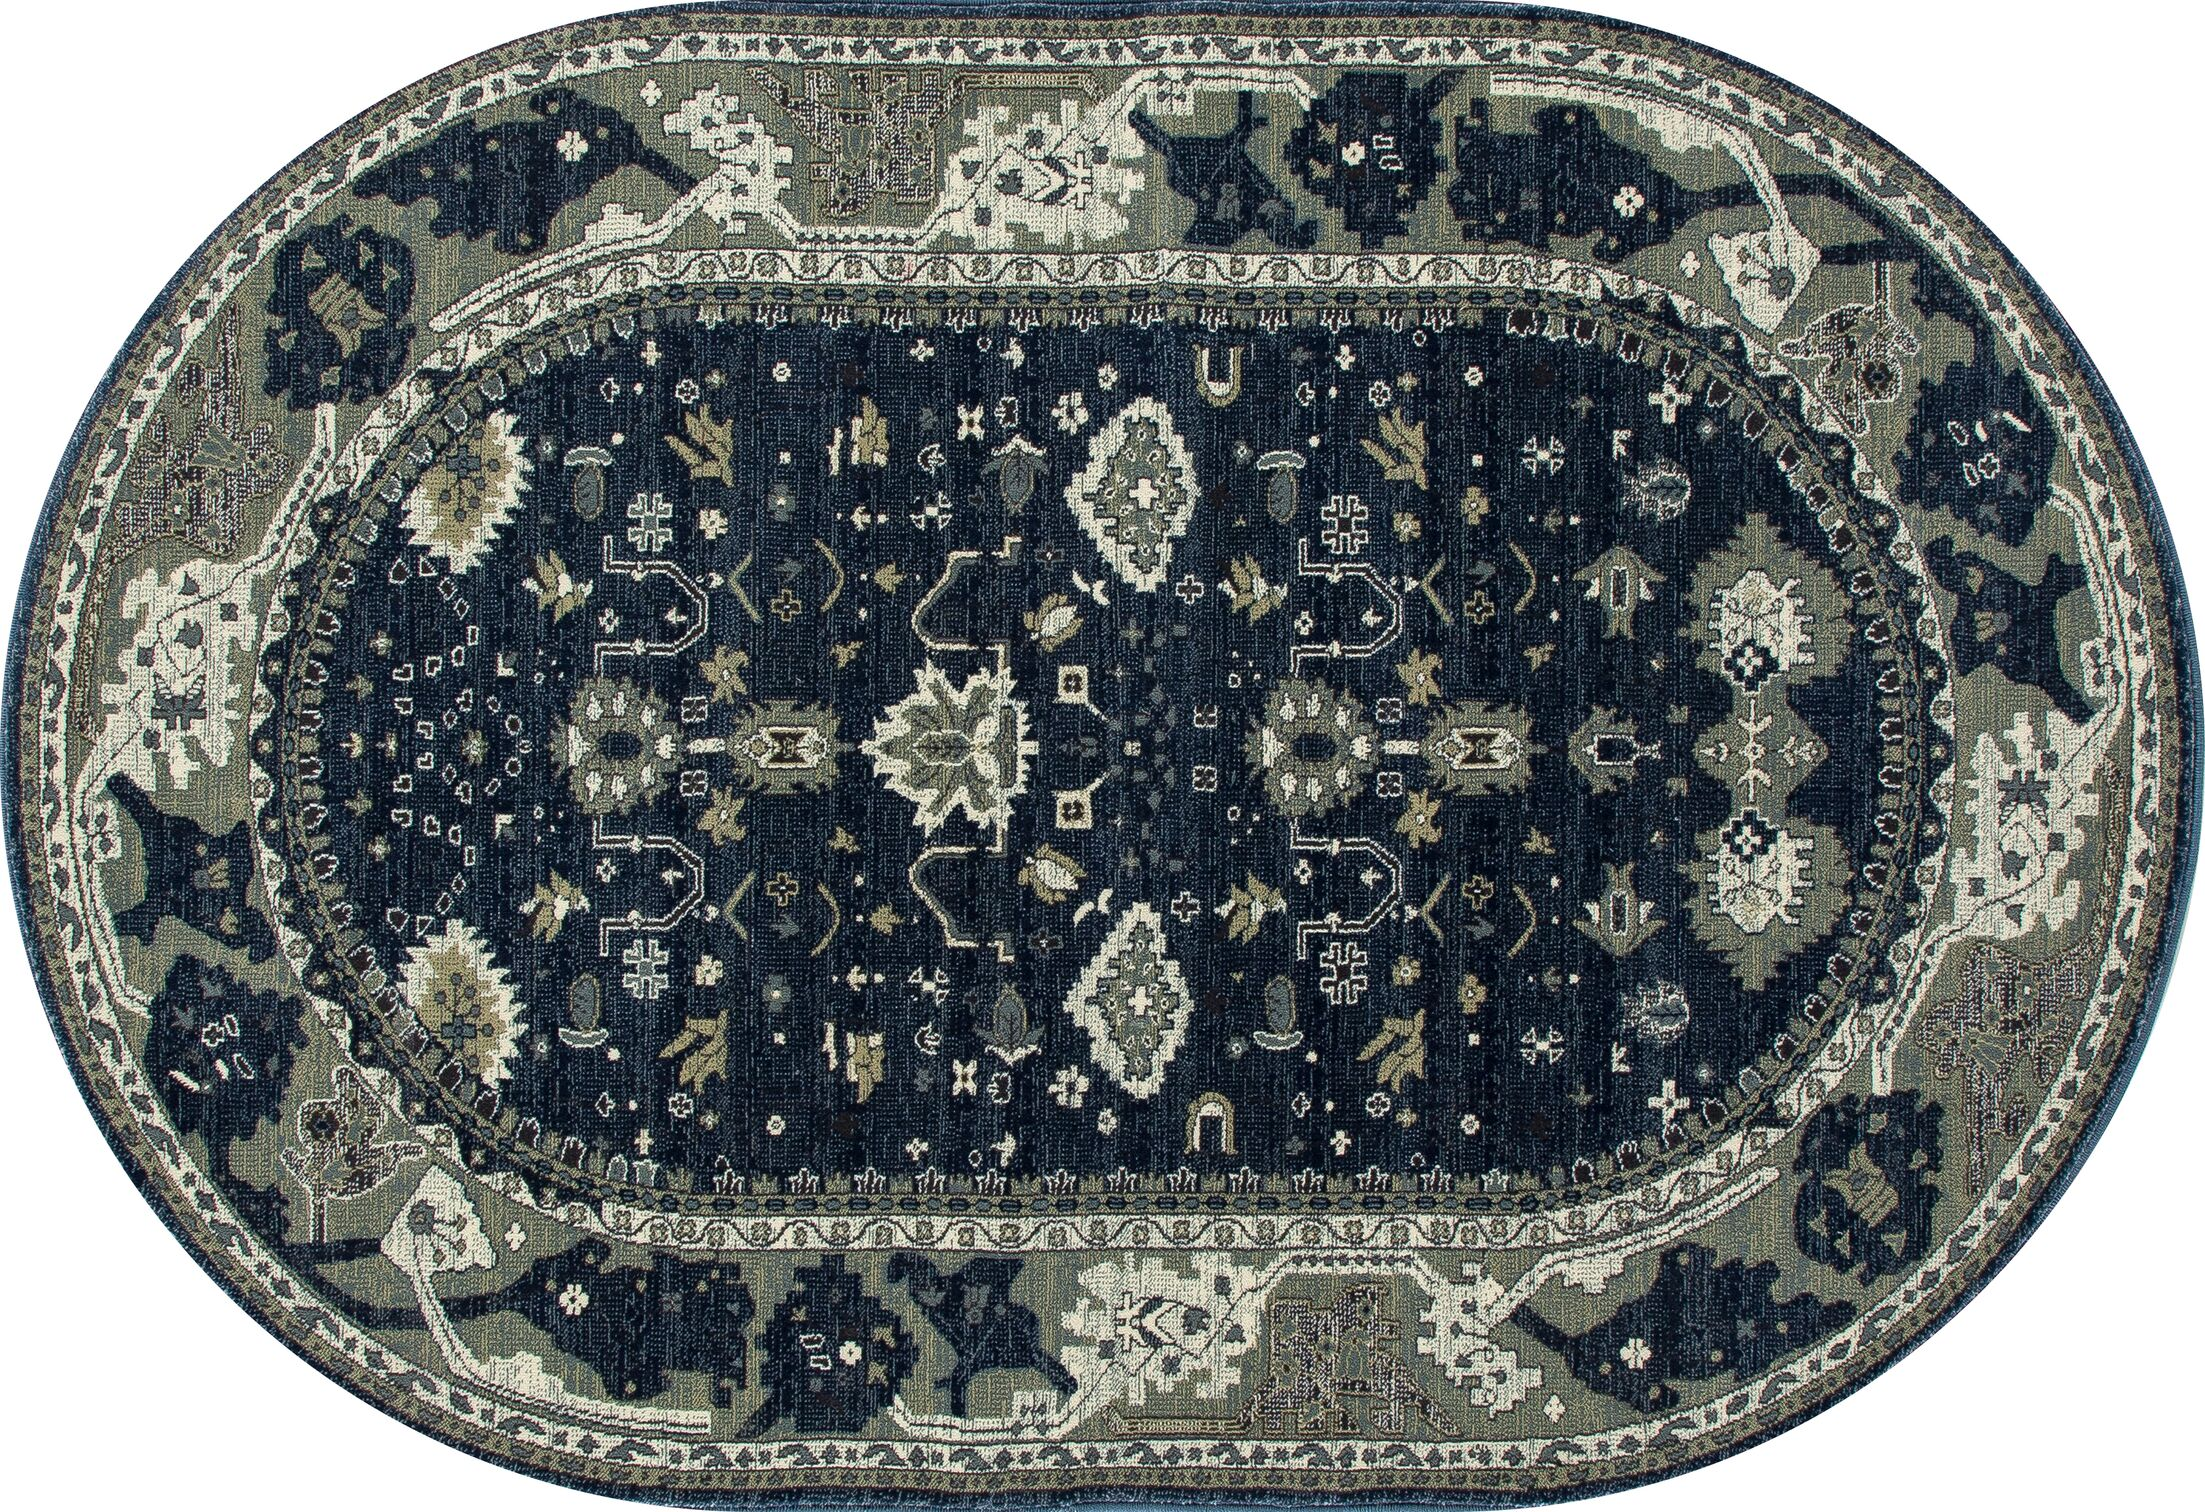 Castellano Navy Blue/Cream Indoor/Outdoor Area Rug Rug Size: OVAL 6'7 x 9'10